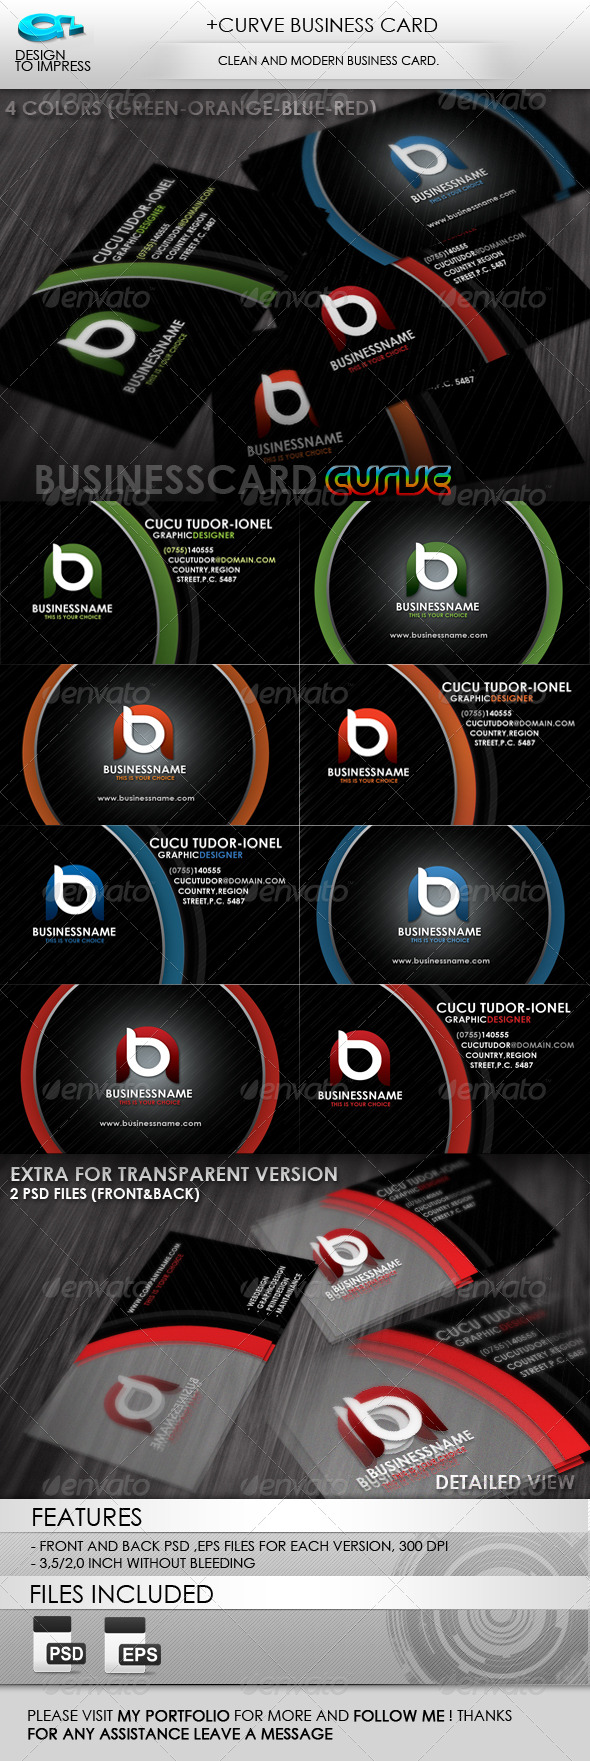 Template creative business card templates designs page 58 reheart Images